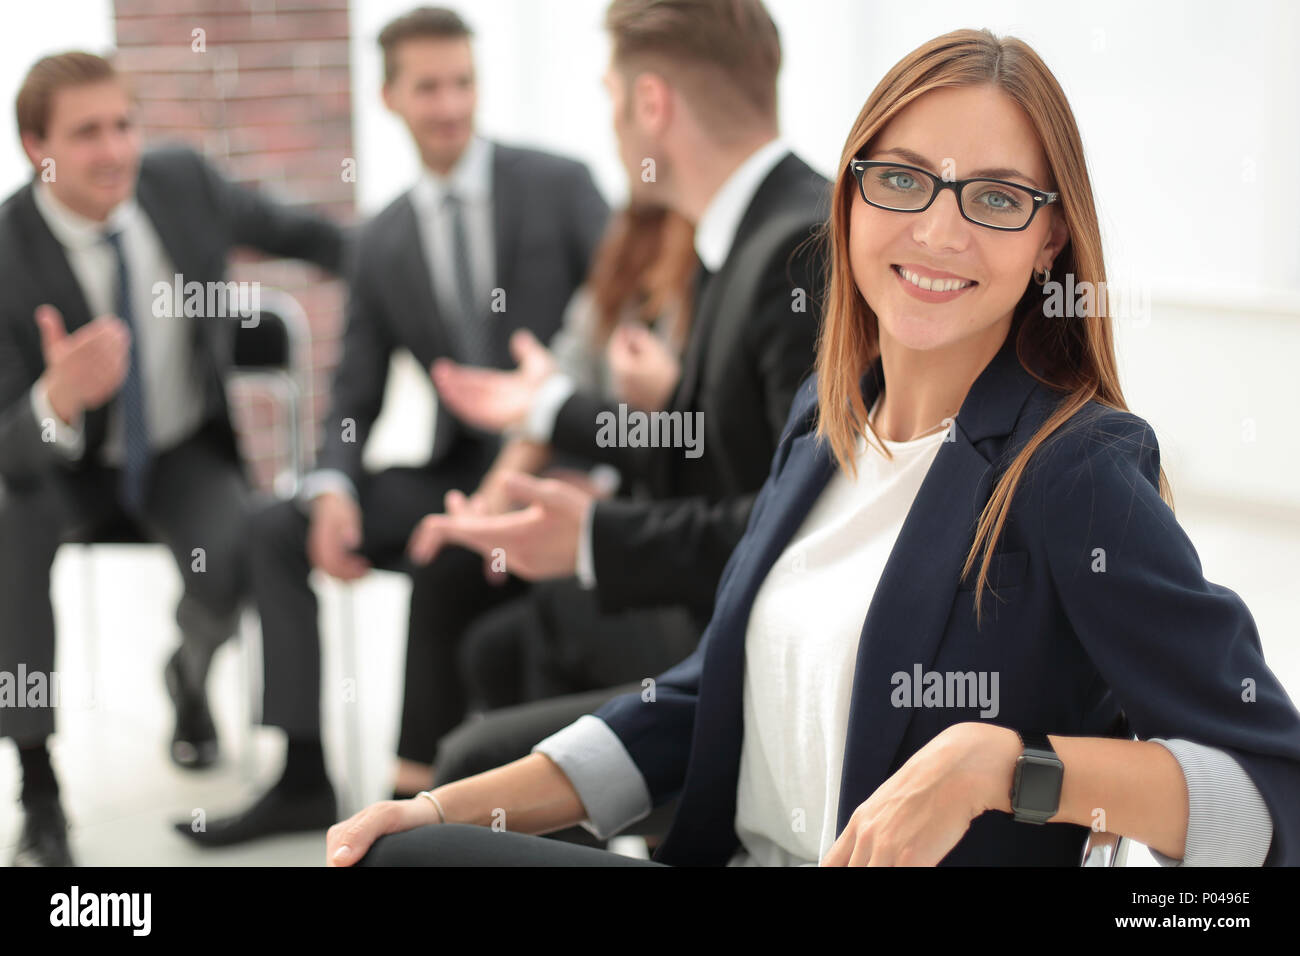 Office worker standing attrayant Photo Stock